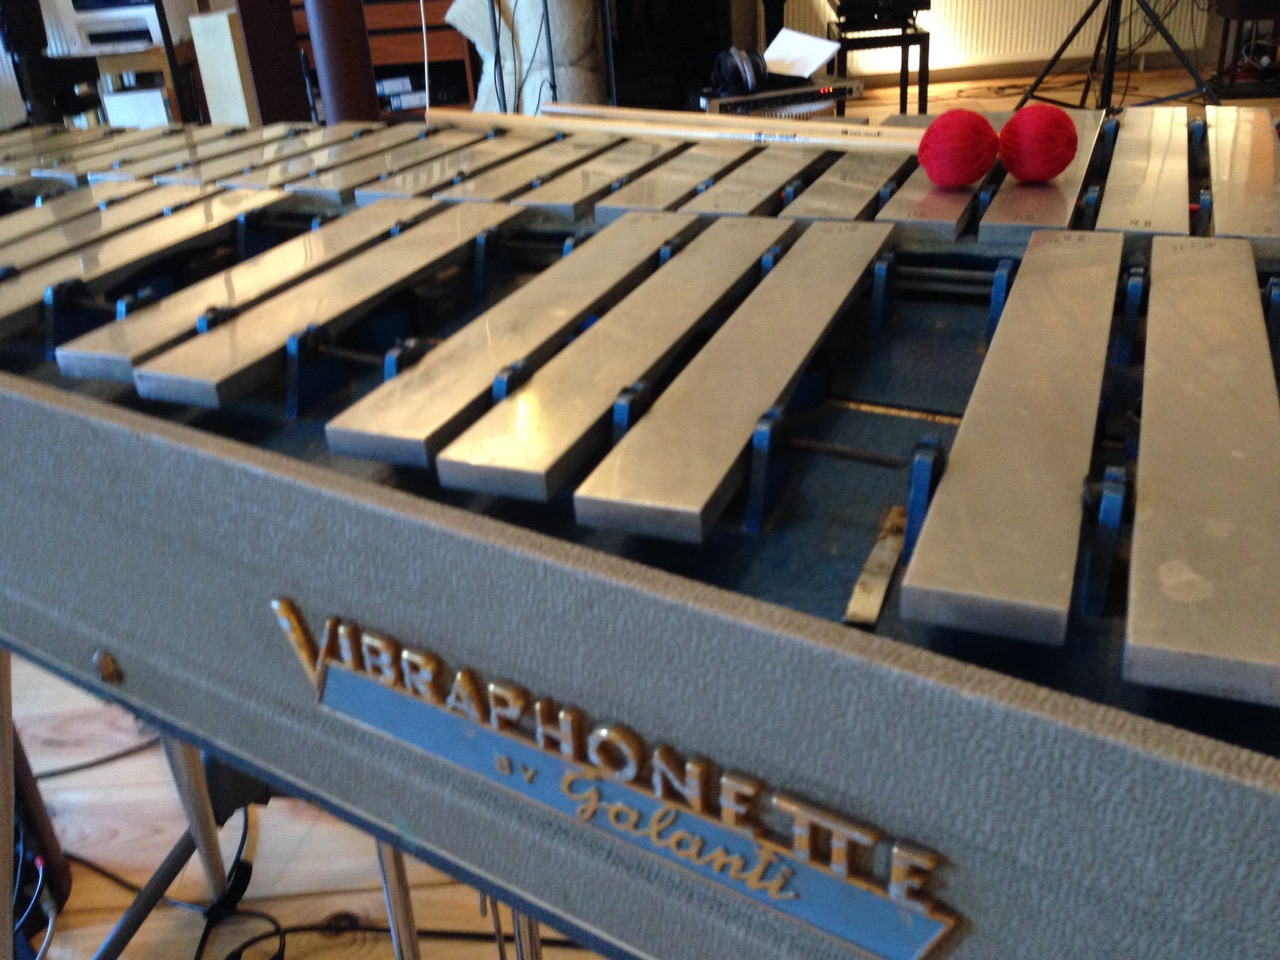 Vintage portable (!) vibraphone by Italian makers Galanti. Looks as sweet as it sounds.